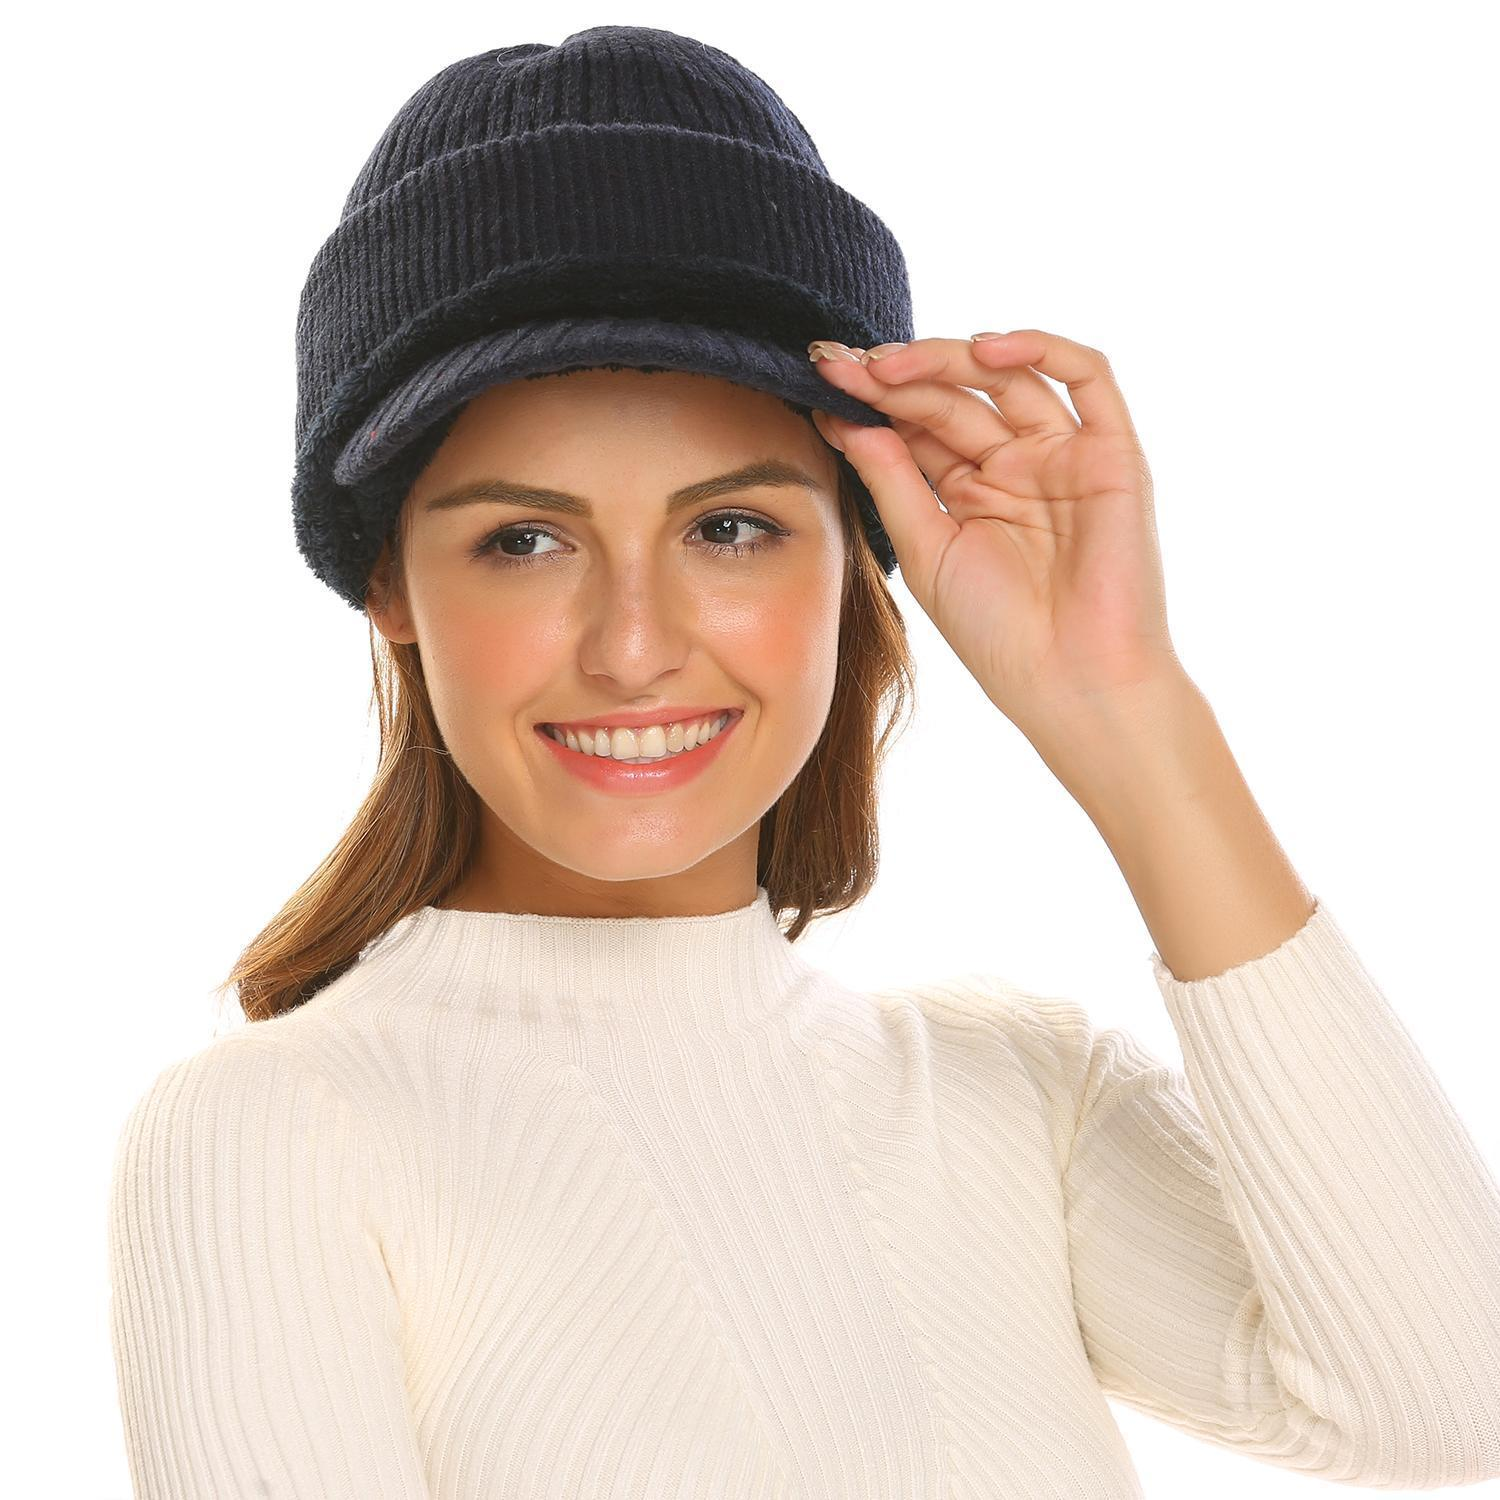 Women Fashion Winter Warm Wool Neck Hat Visor Ear Face Cover  Buy Sell  Online   Best Prices in Pakistan  1338d6042358